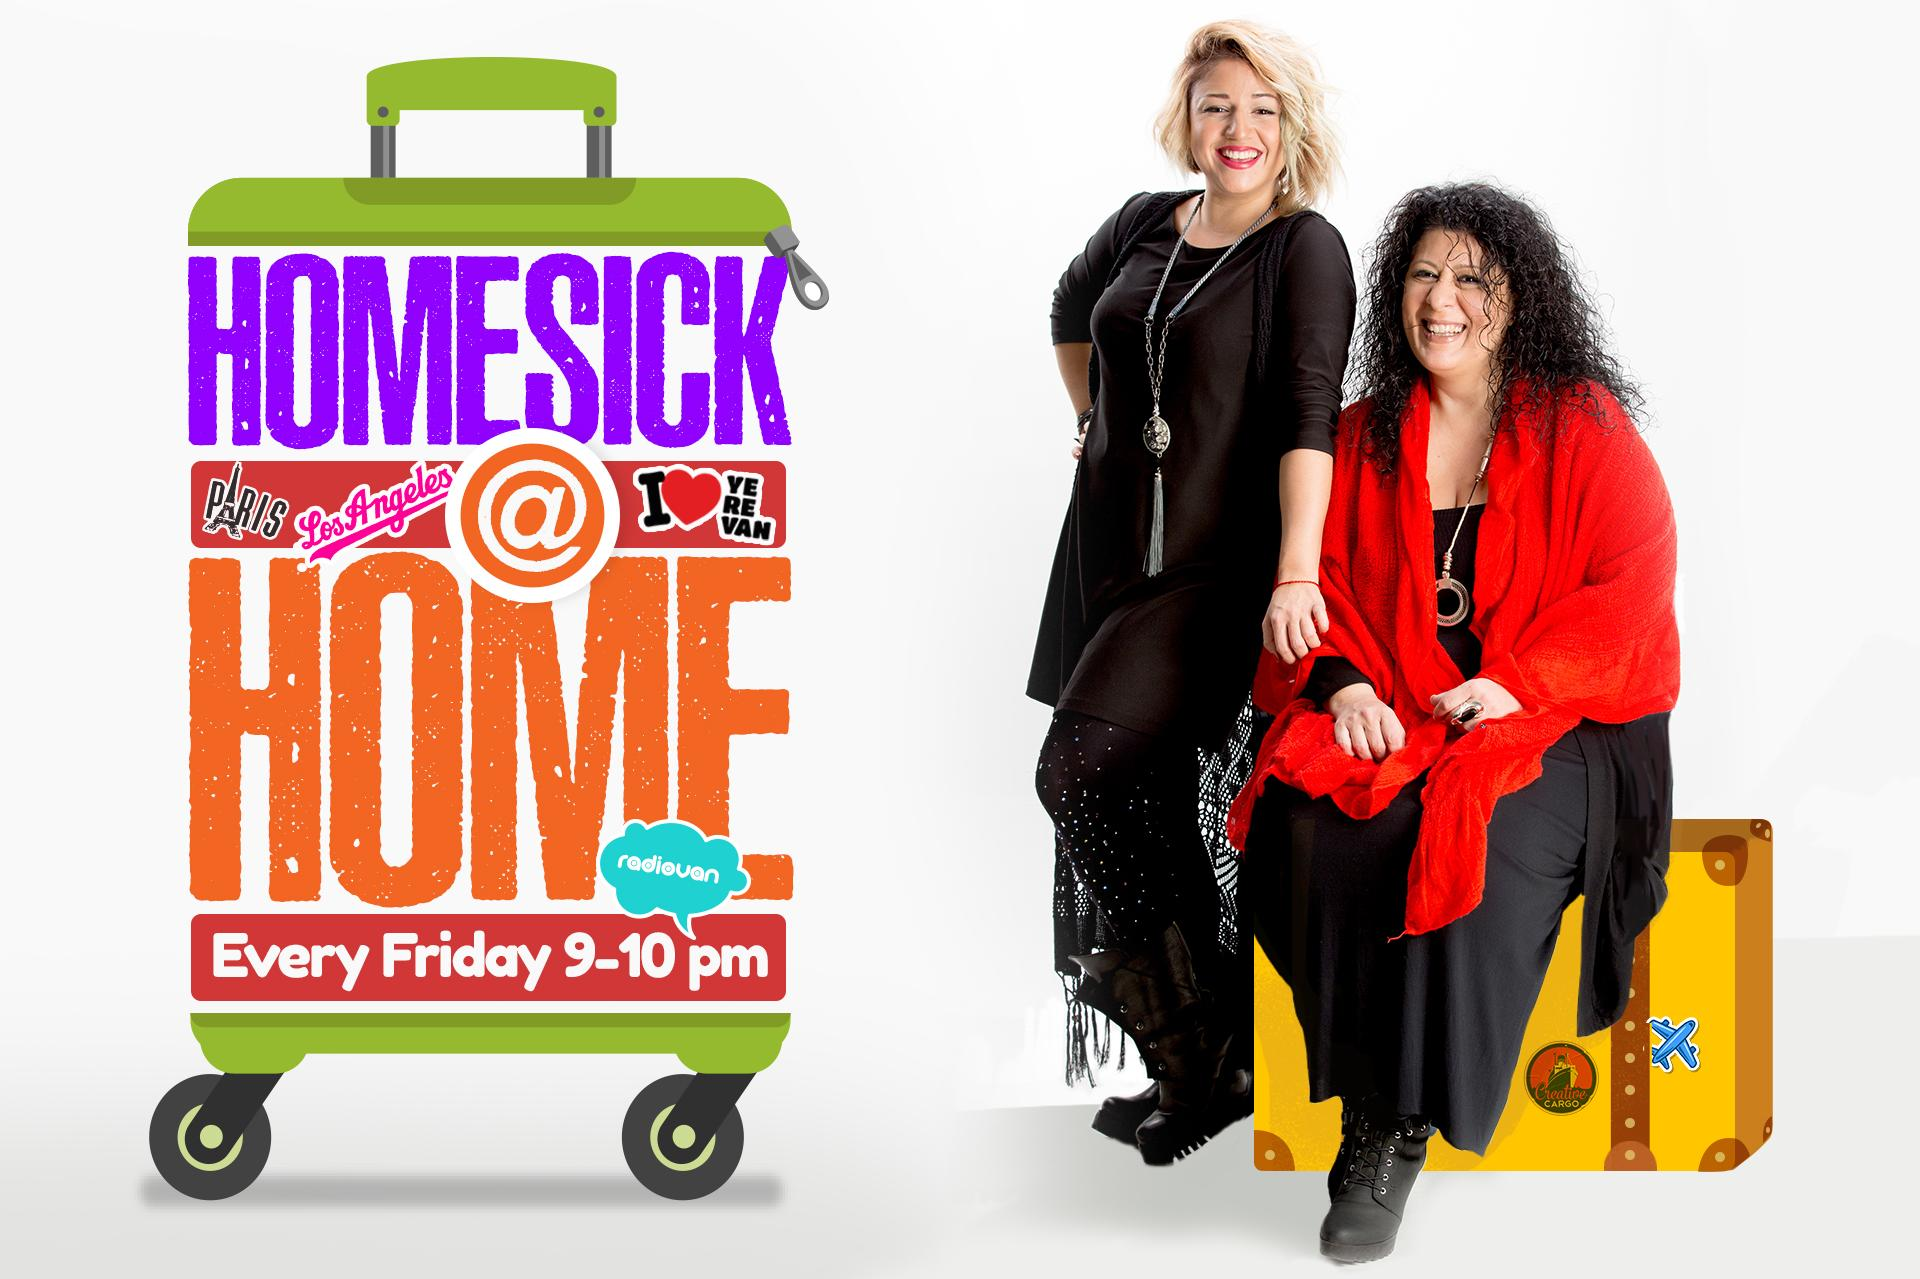 Women Power on Homesick at Home